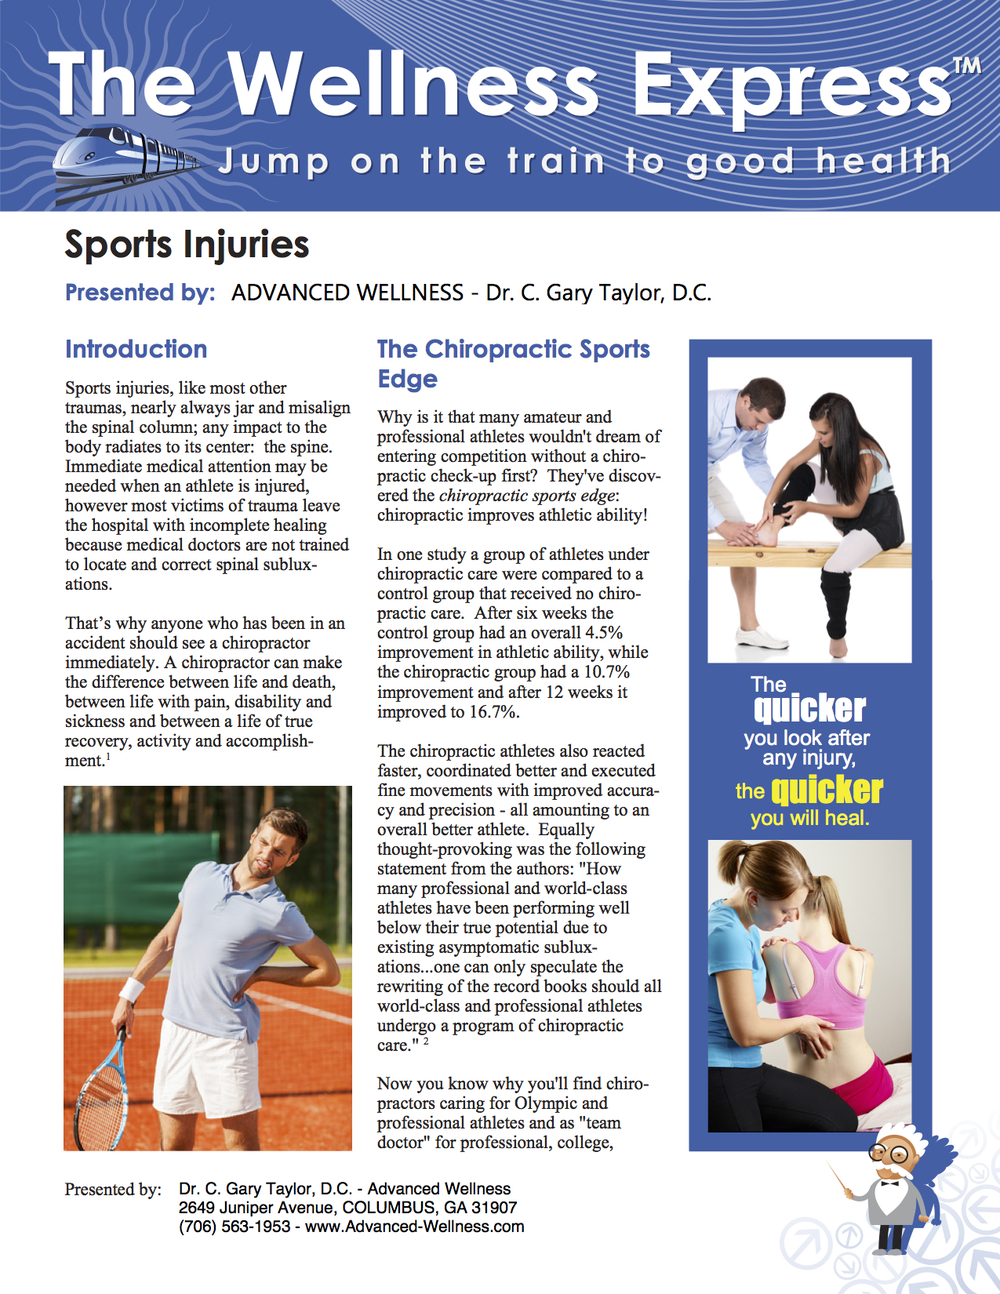 Sports Injuries Newsletter Advanced Wellness Dr. C. Gary Taylor